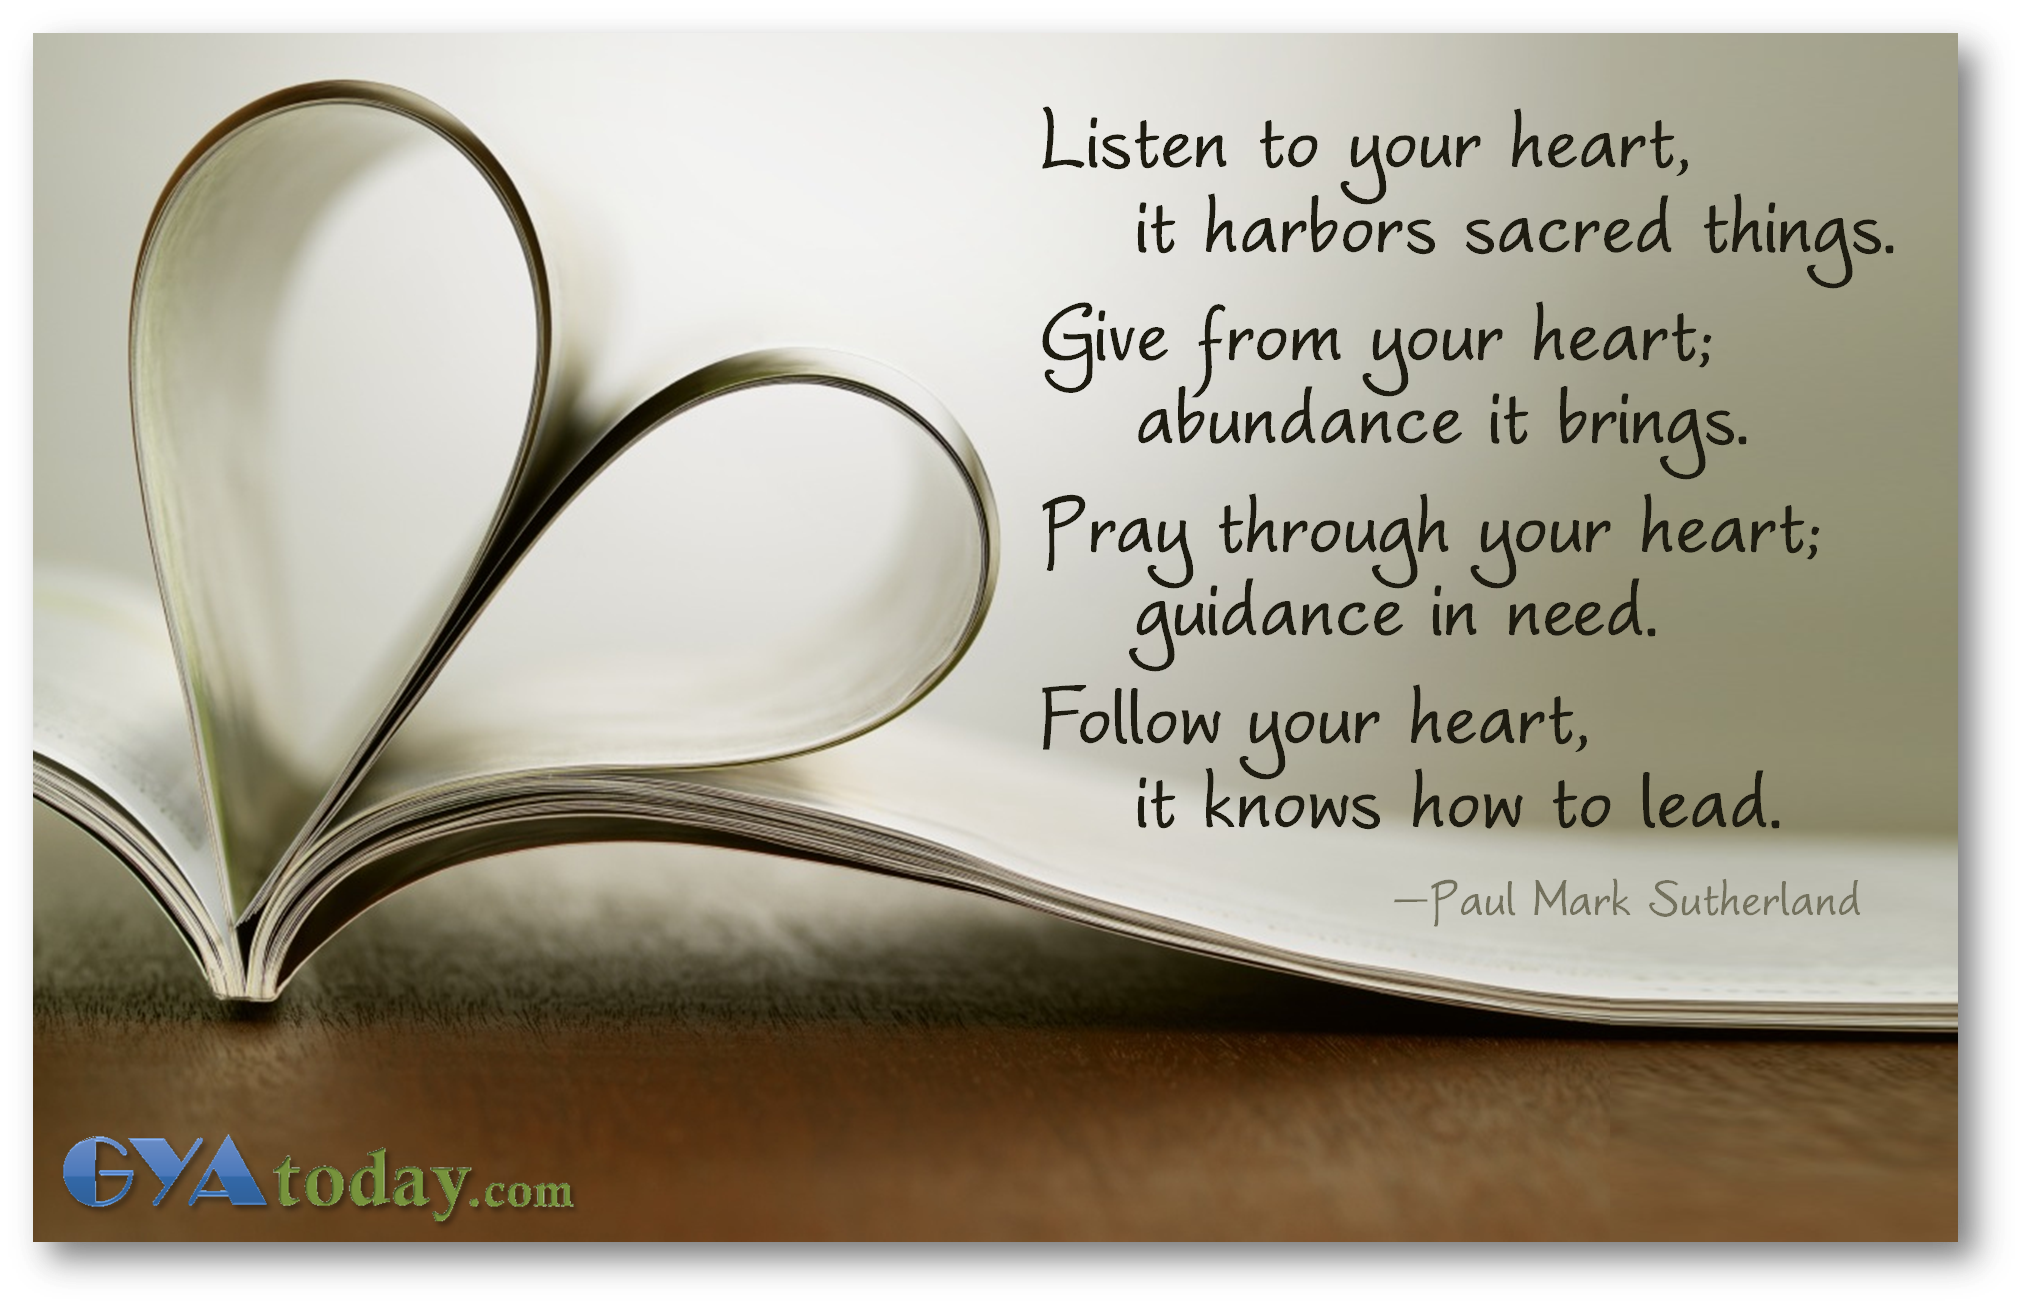 Follow Your Heart | GYA today